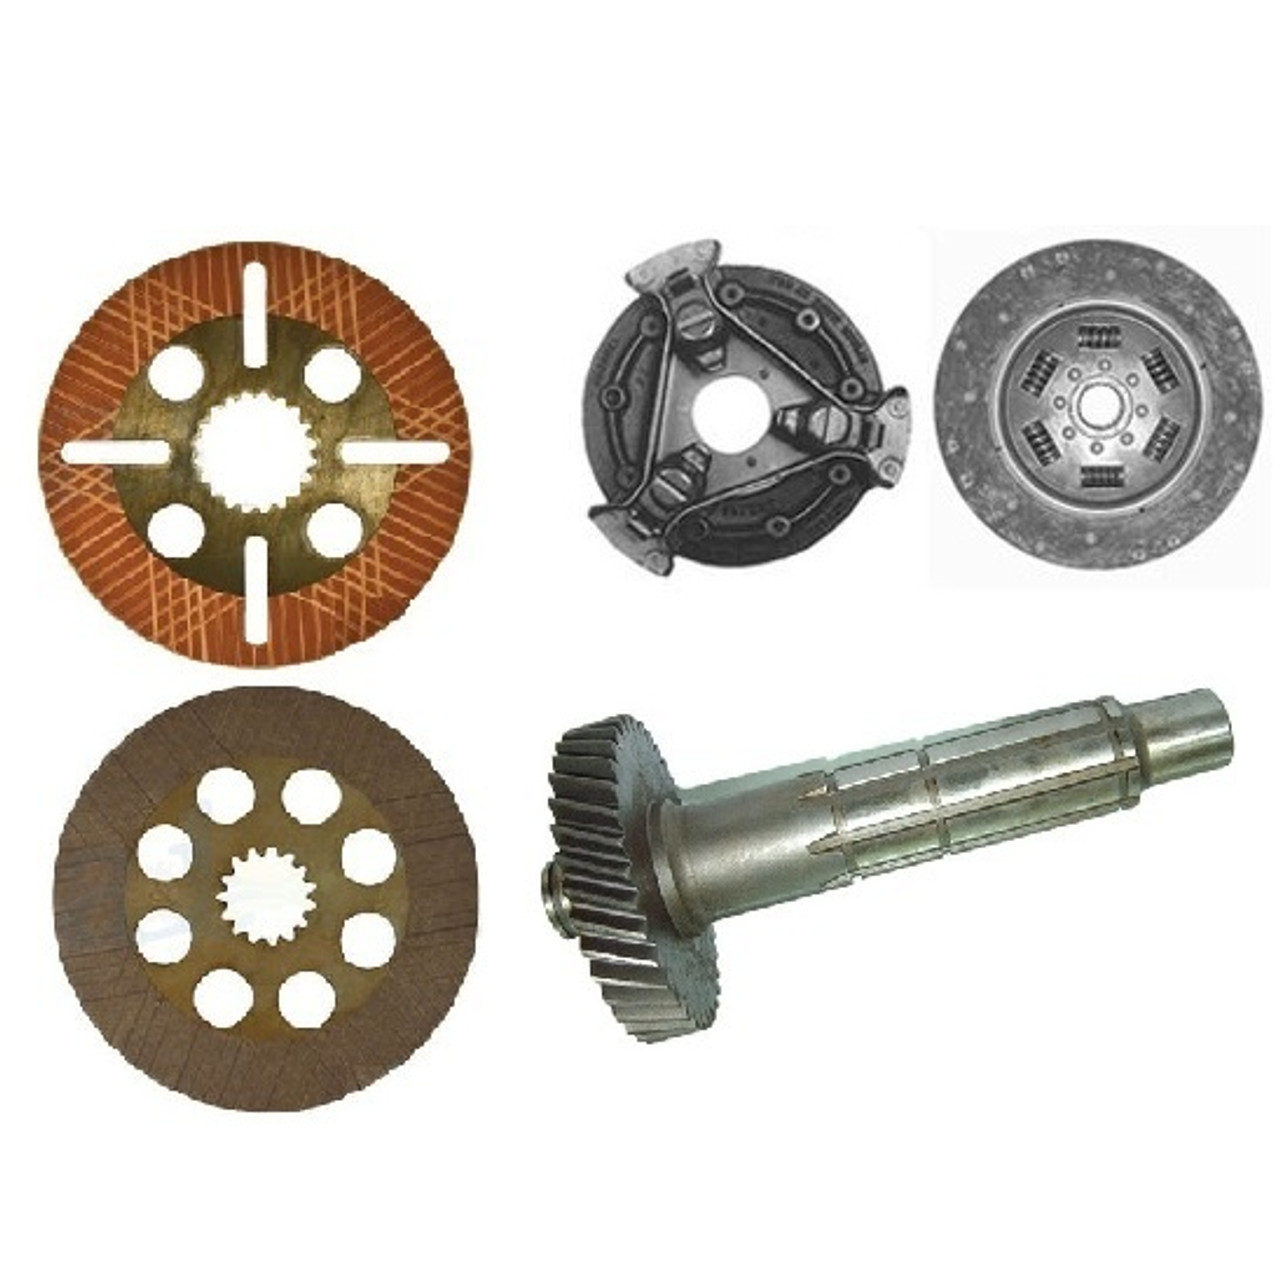 Transmission, Clutch, and Brakes